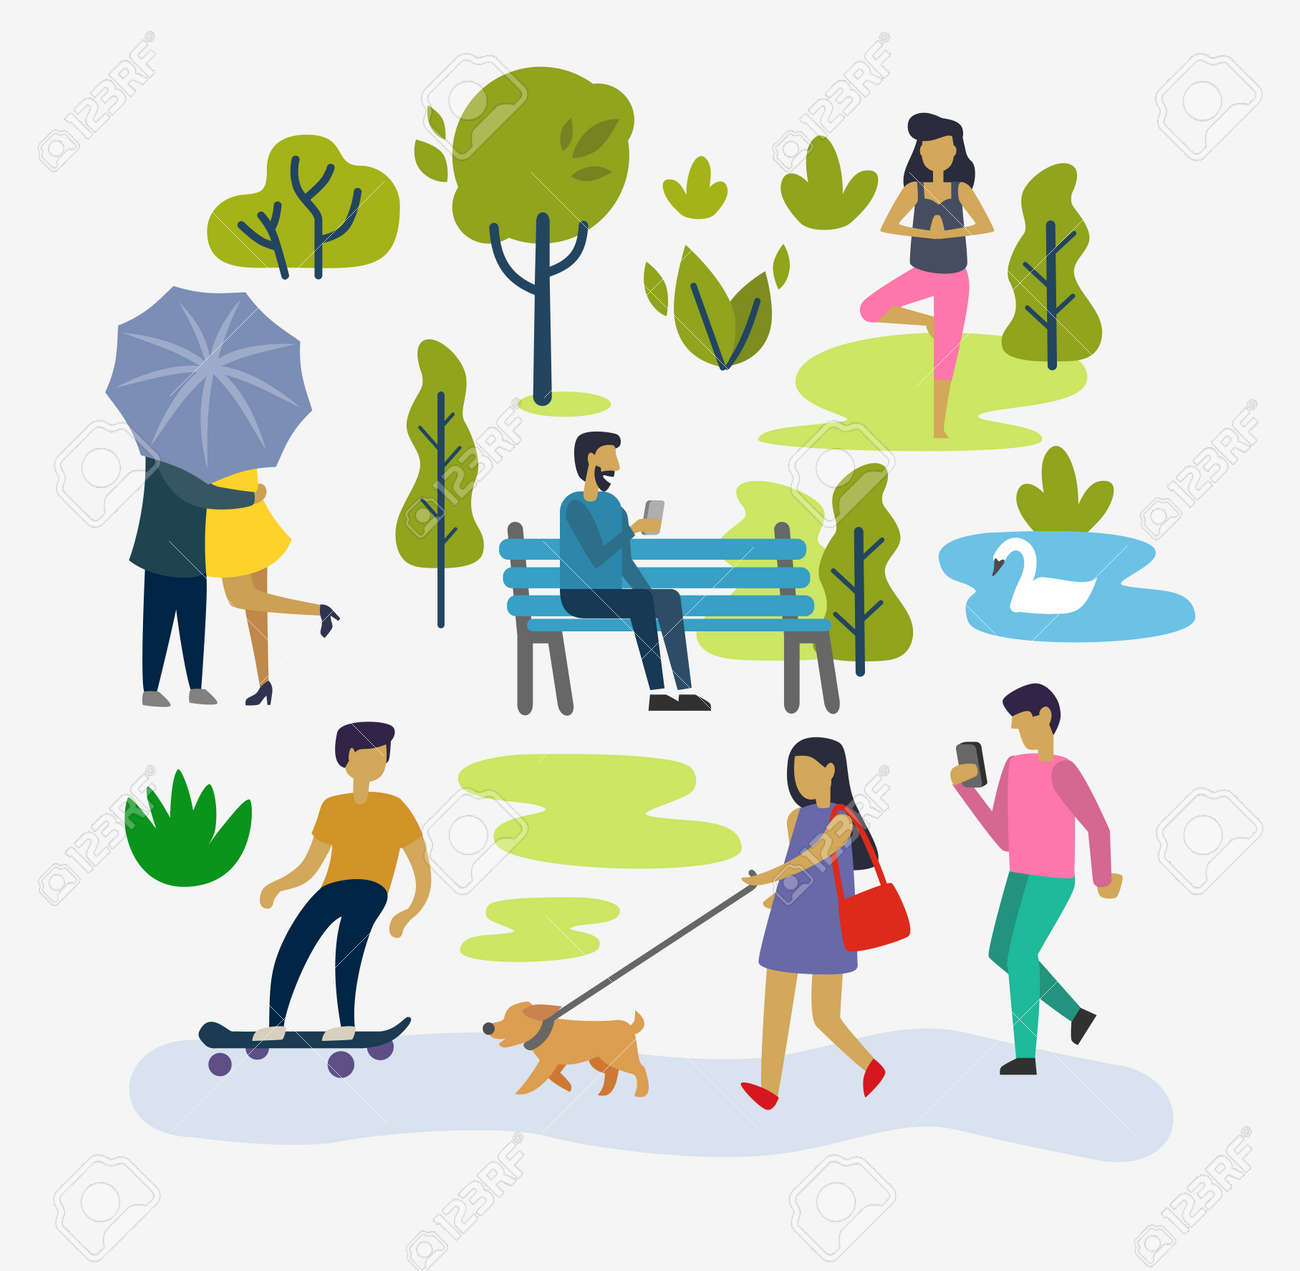 Image result for outdoor activities clipart